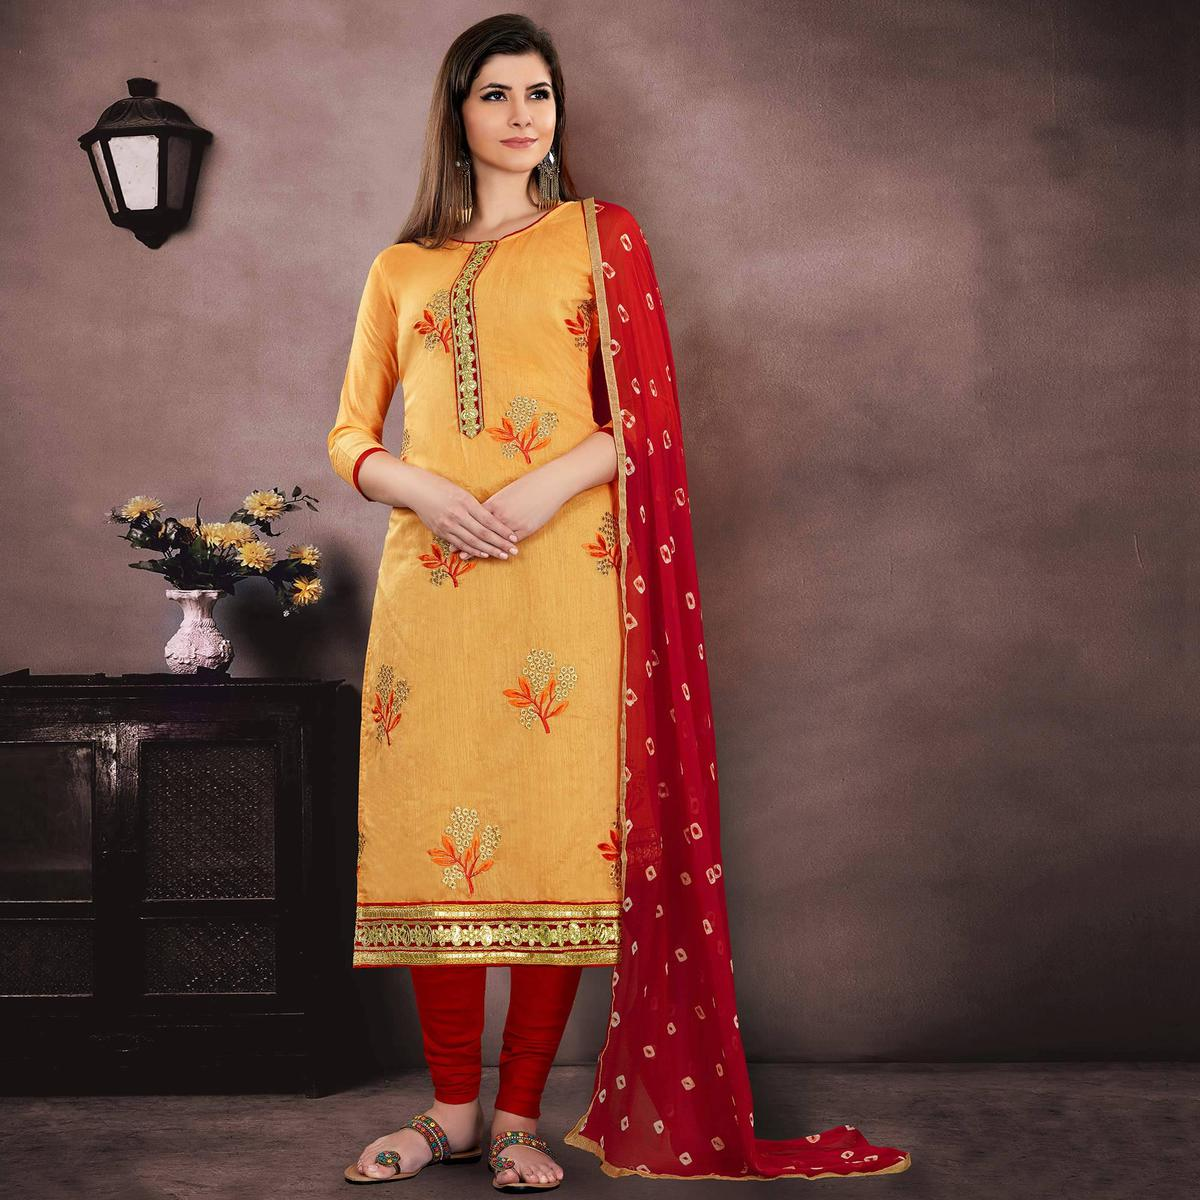 b85b01ccacd28e Buy Gorgeous Mustard Yellow Colored Party Wear Embroidered Modal Chanderi  Dress Material online India, Best Prices, Reviews - Peachmode